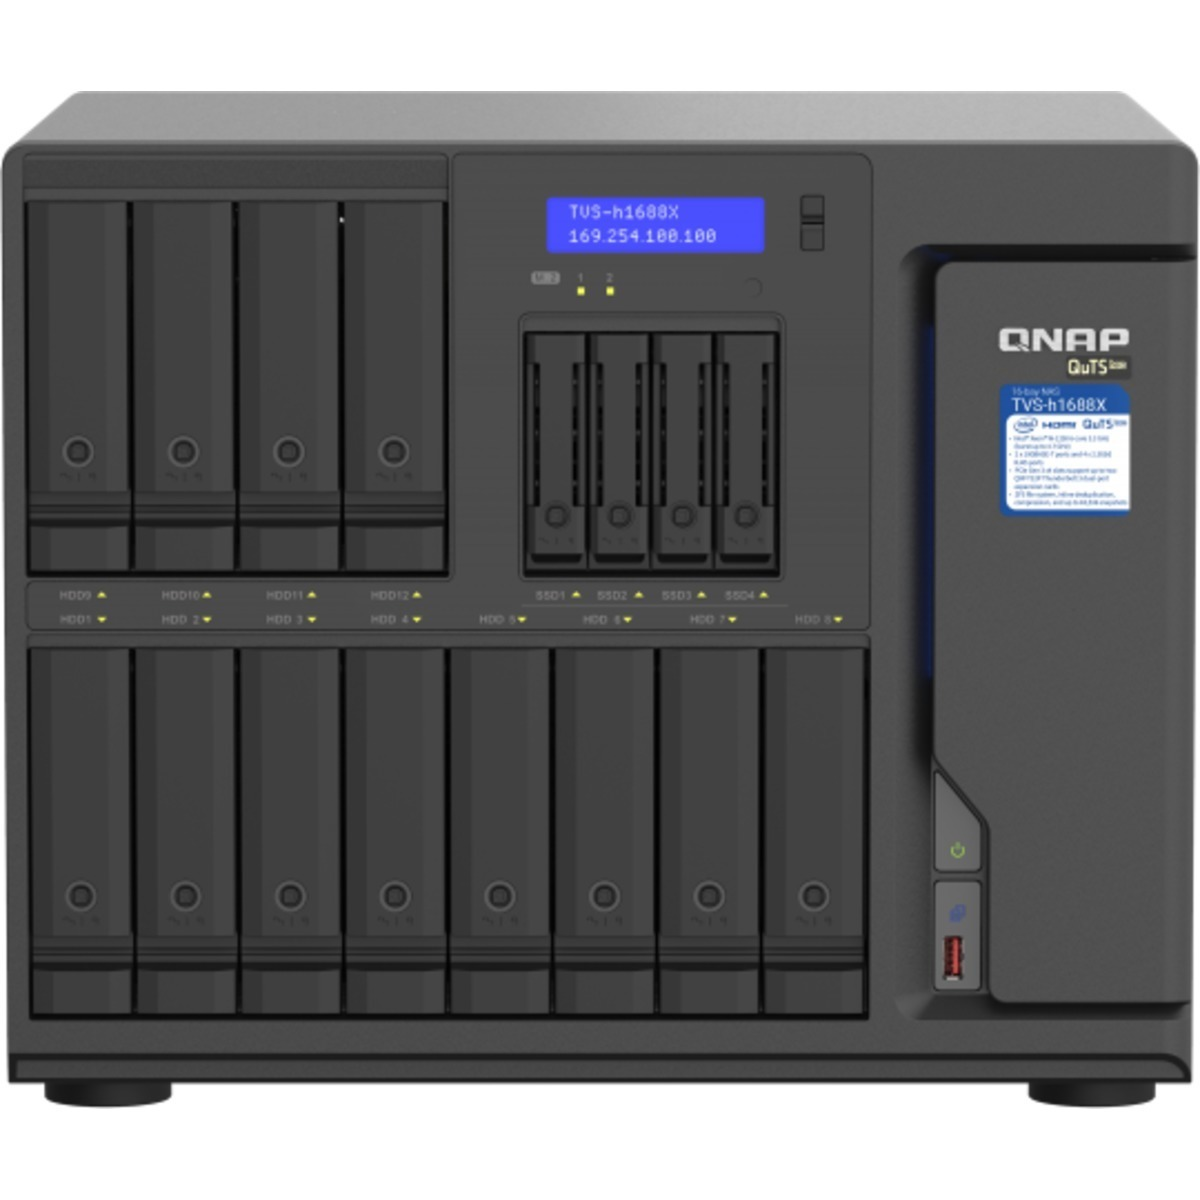 buy $3904 QNAP TVS-h1688X QuTS hero NAS 24tb Desktop NAS - Network Attached Storage Device 12x2000gb Seagate BarraCuda ST2000DM008 3.5 7200rpm SATA 6Gb/s HDD CONSUMER Class Drives Installed - Burn-In Tested - ON SALE - nas headquarters buy network attached storage server device das new raid-5 free shipping usa holiday new year clearance sale TVS-h1688X QuTS hero NAS